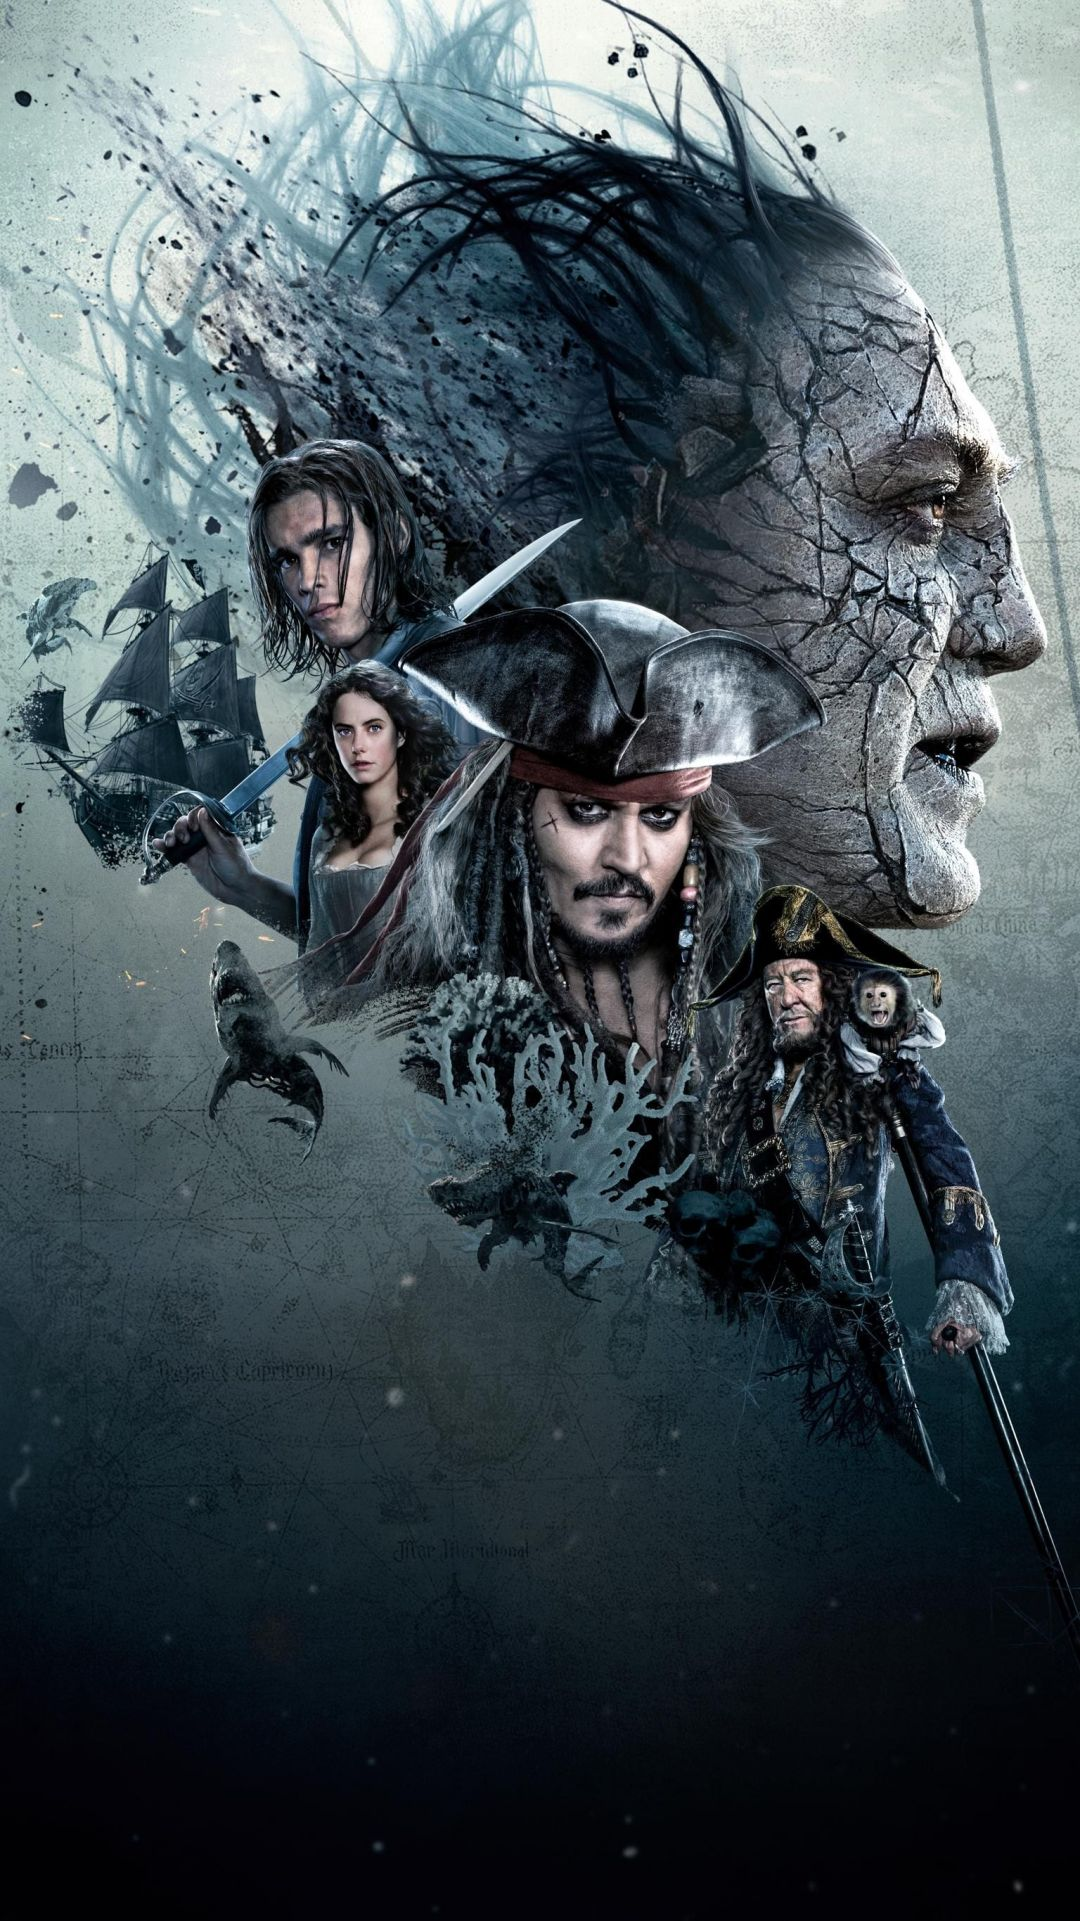 125 Pirates Of The Caribbean Android Iphone Desktop Hd Backgrounds Wallpapers 1080p 4k 1536x2732 2020